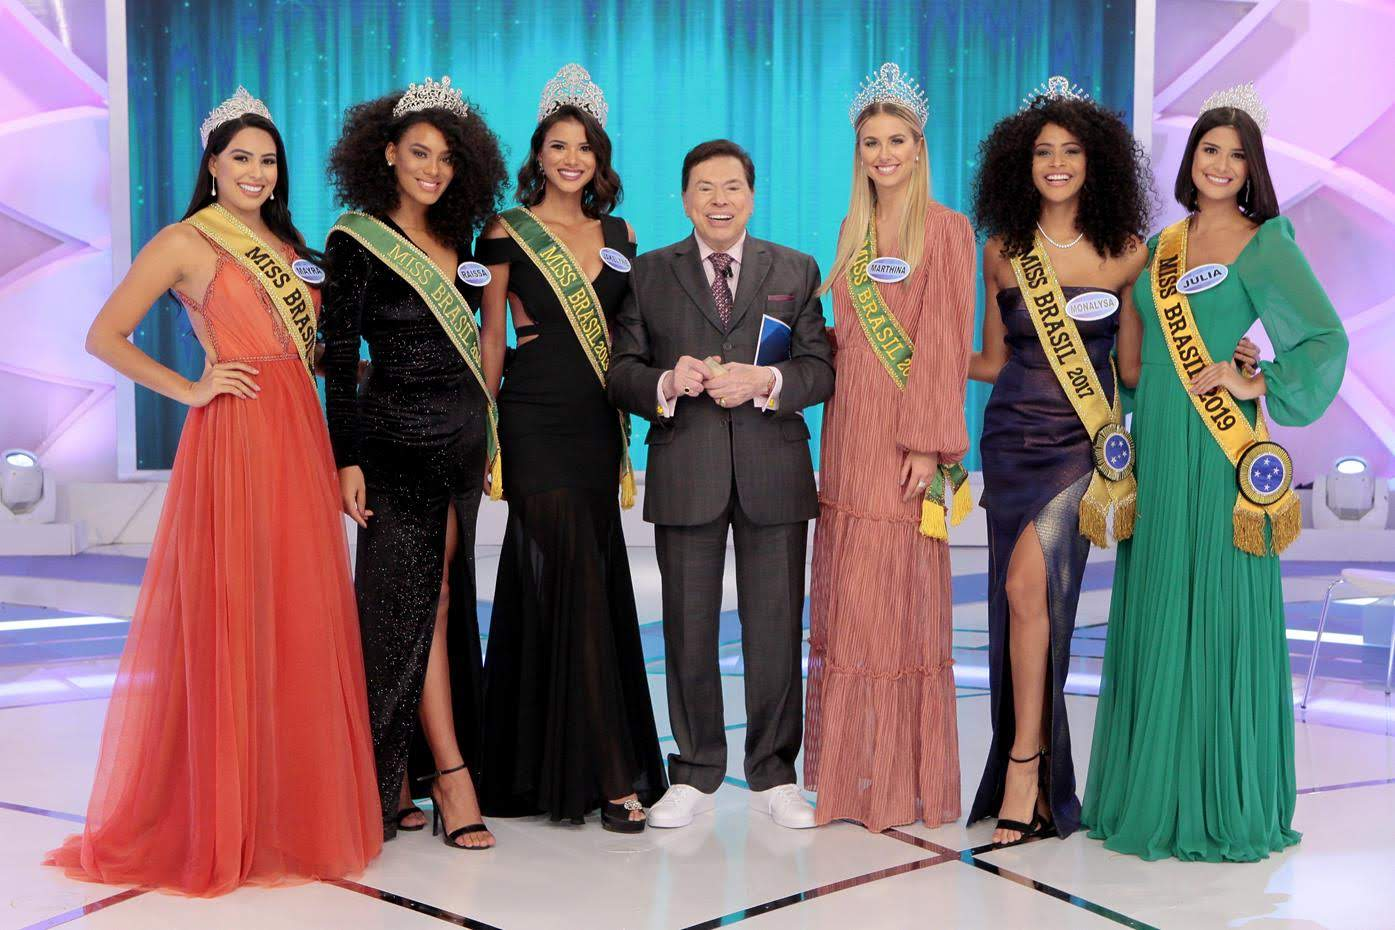 Silvio as Miss Brasil